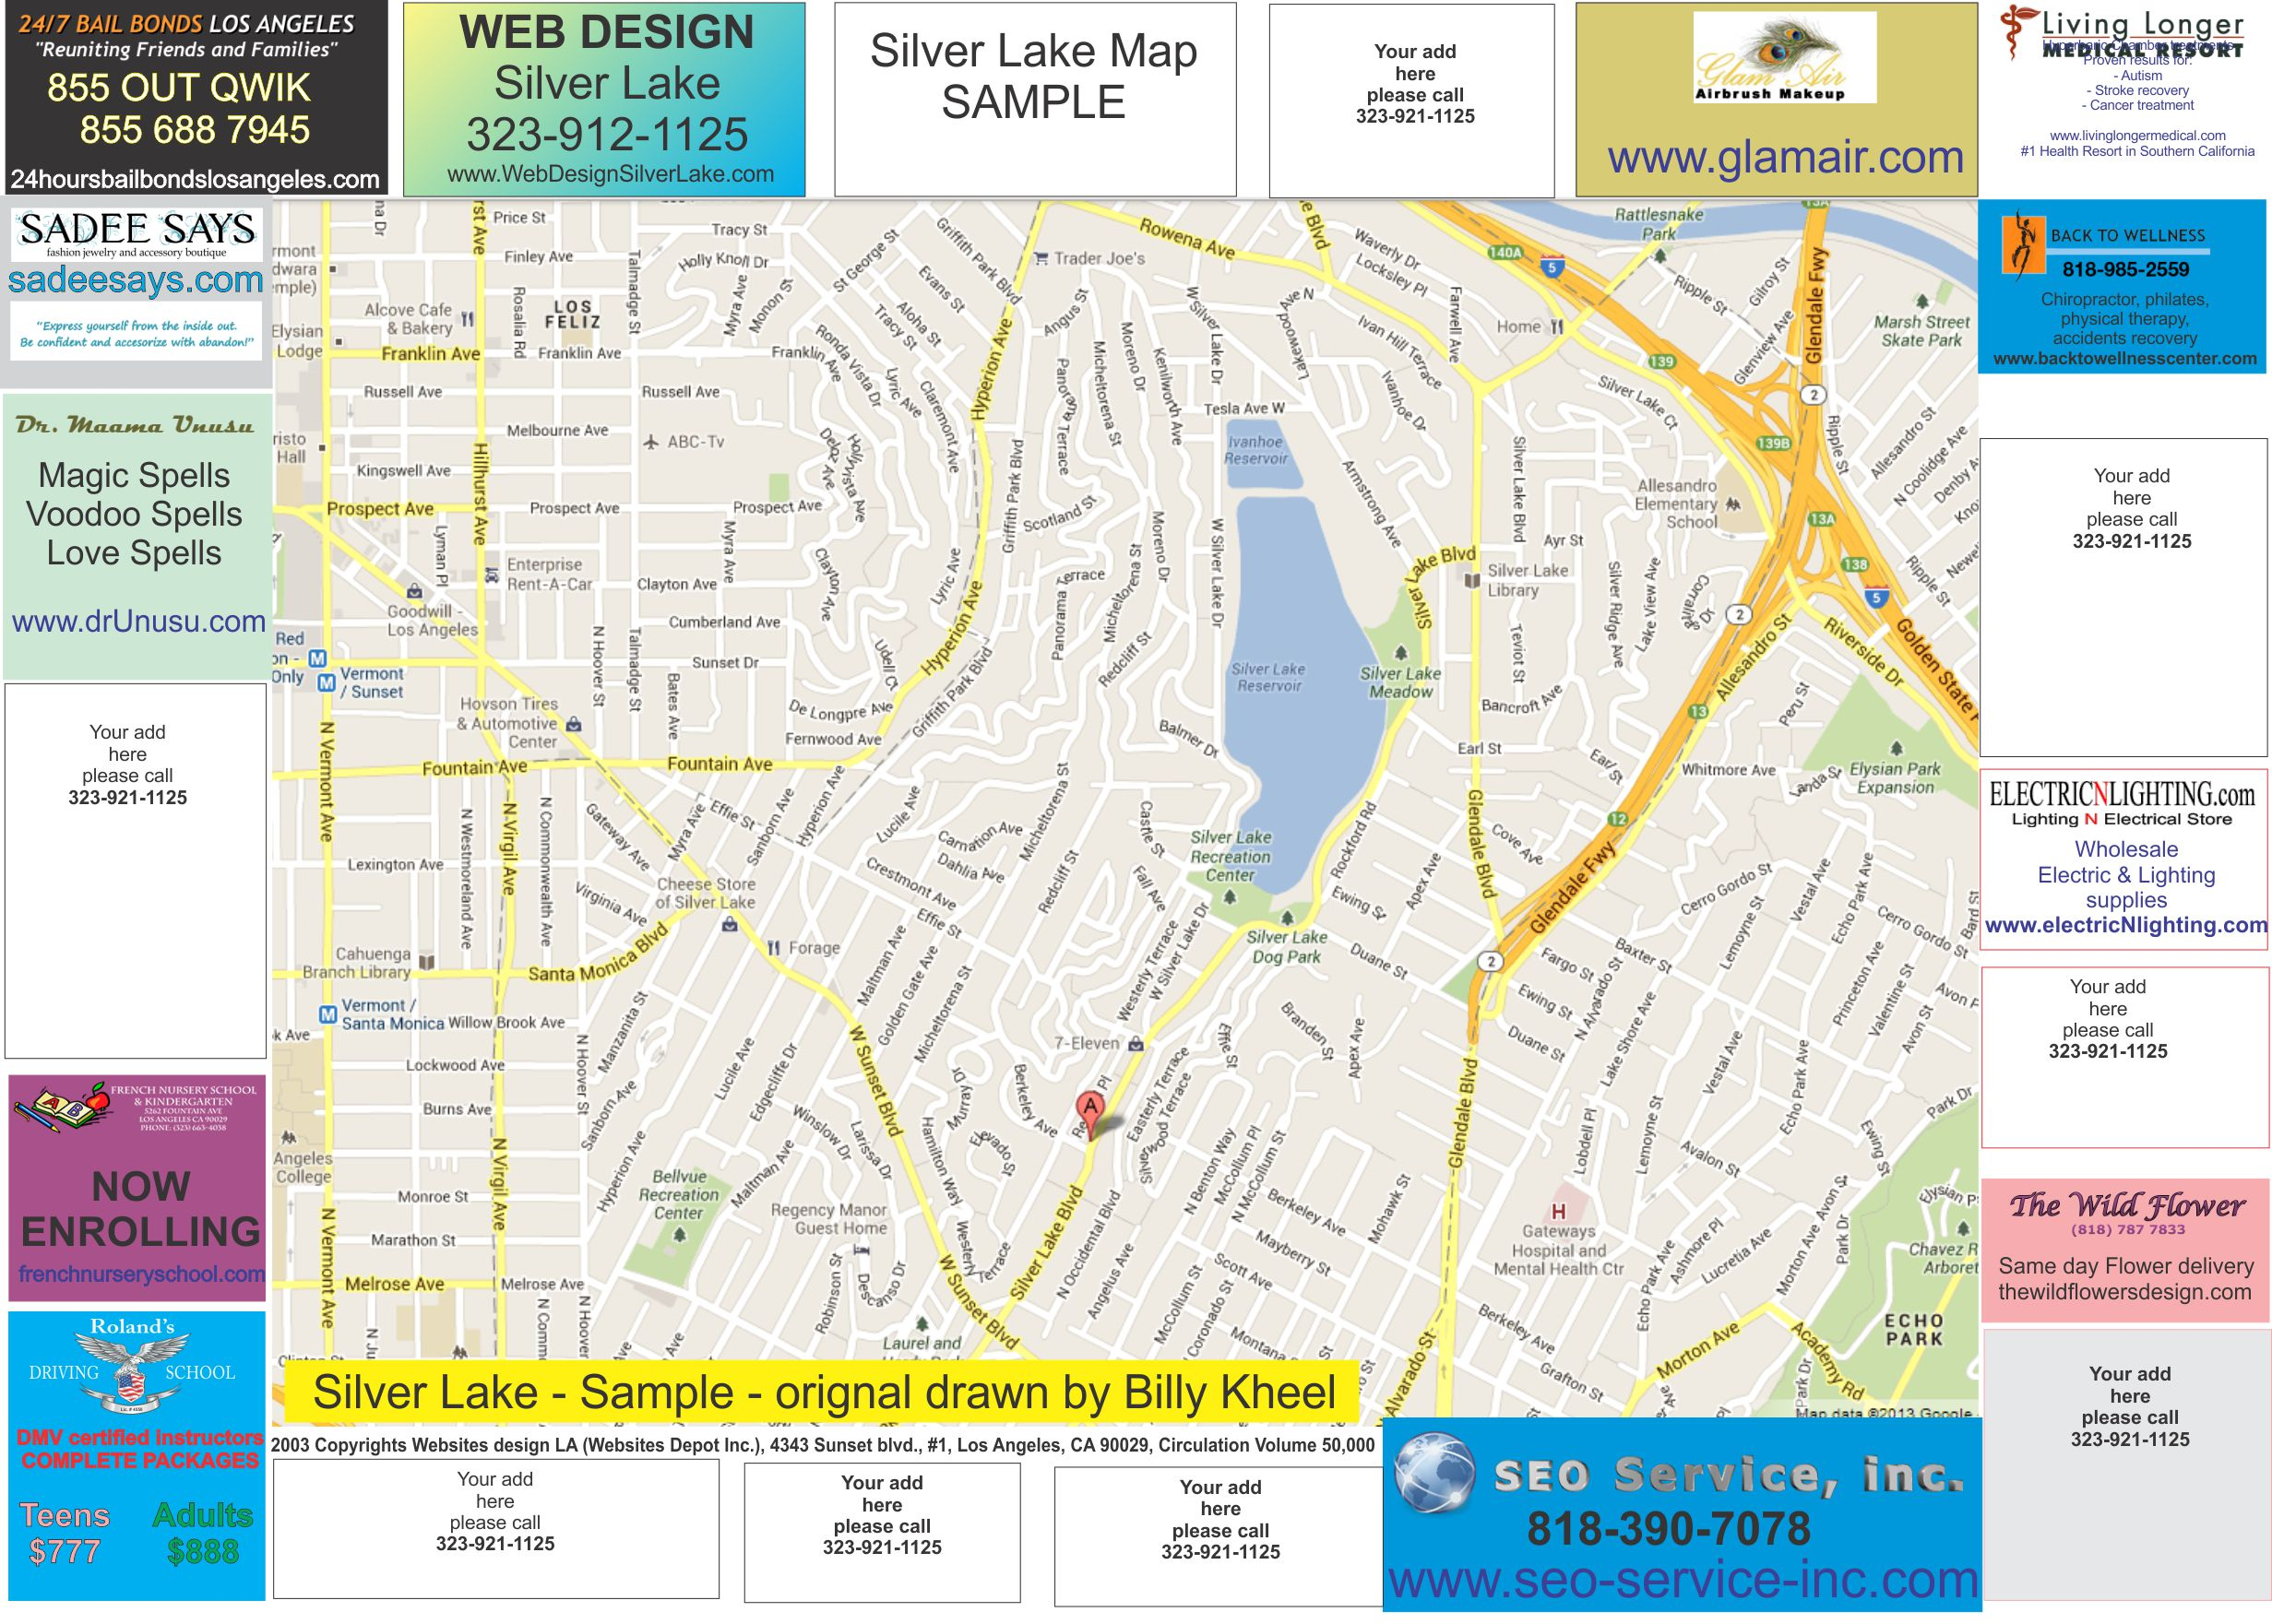 Coming Soon Local Map Of Silver Lake Web Design Silver Lake - Los angeles map silver lake